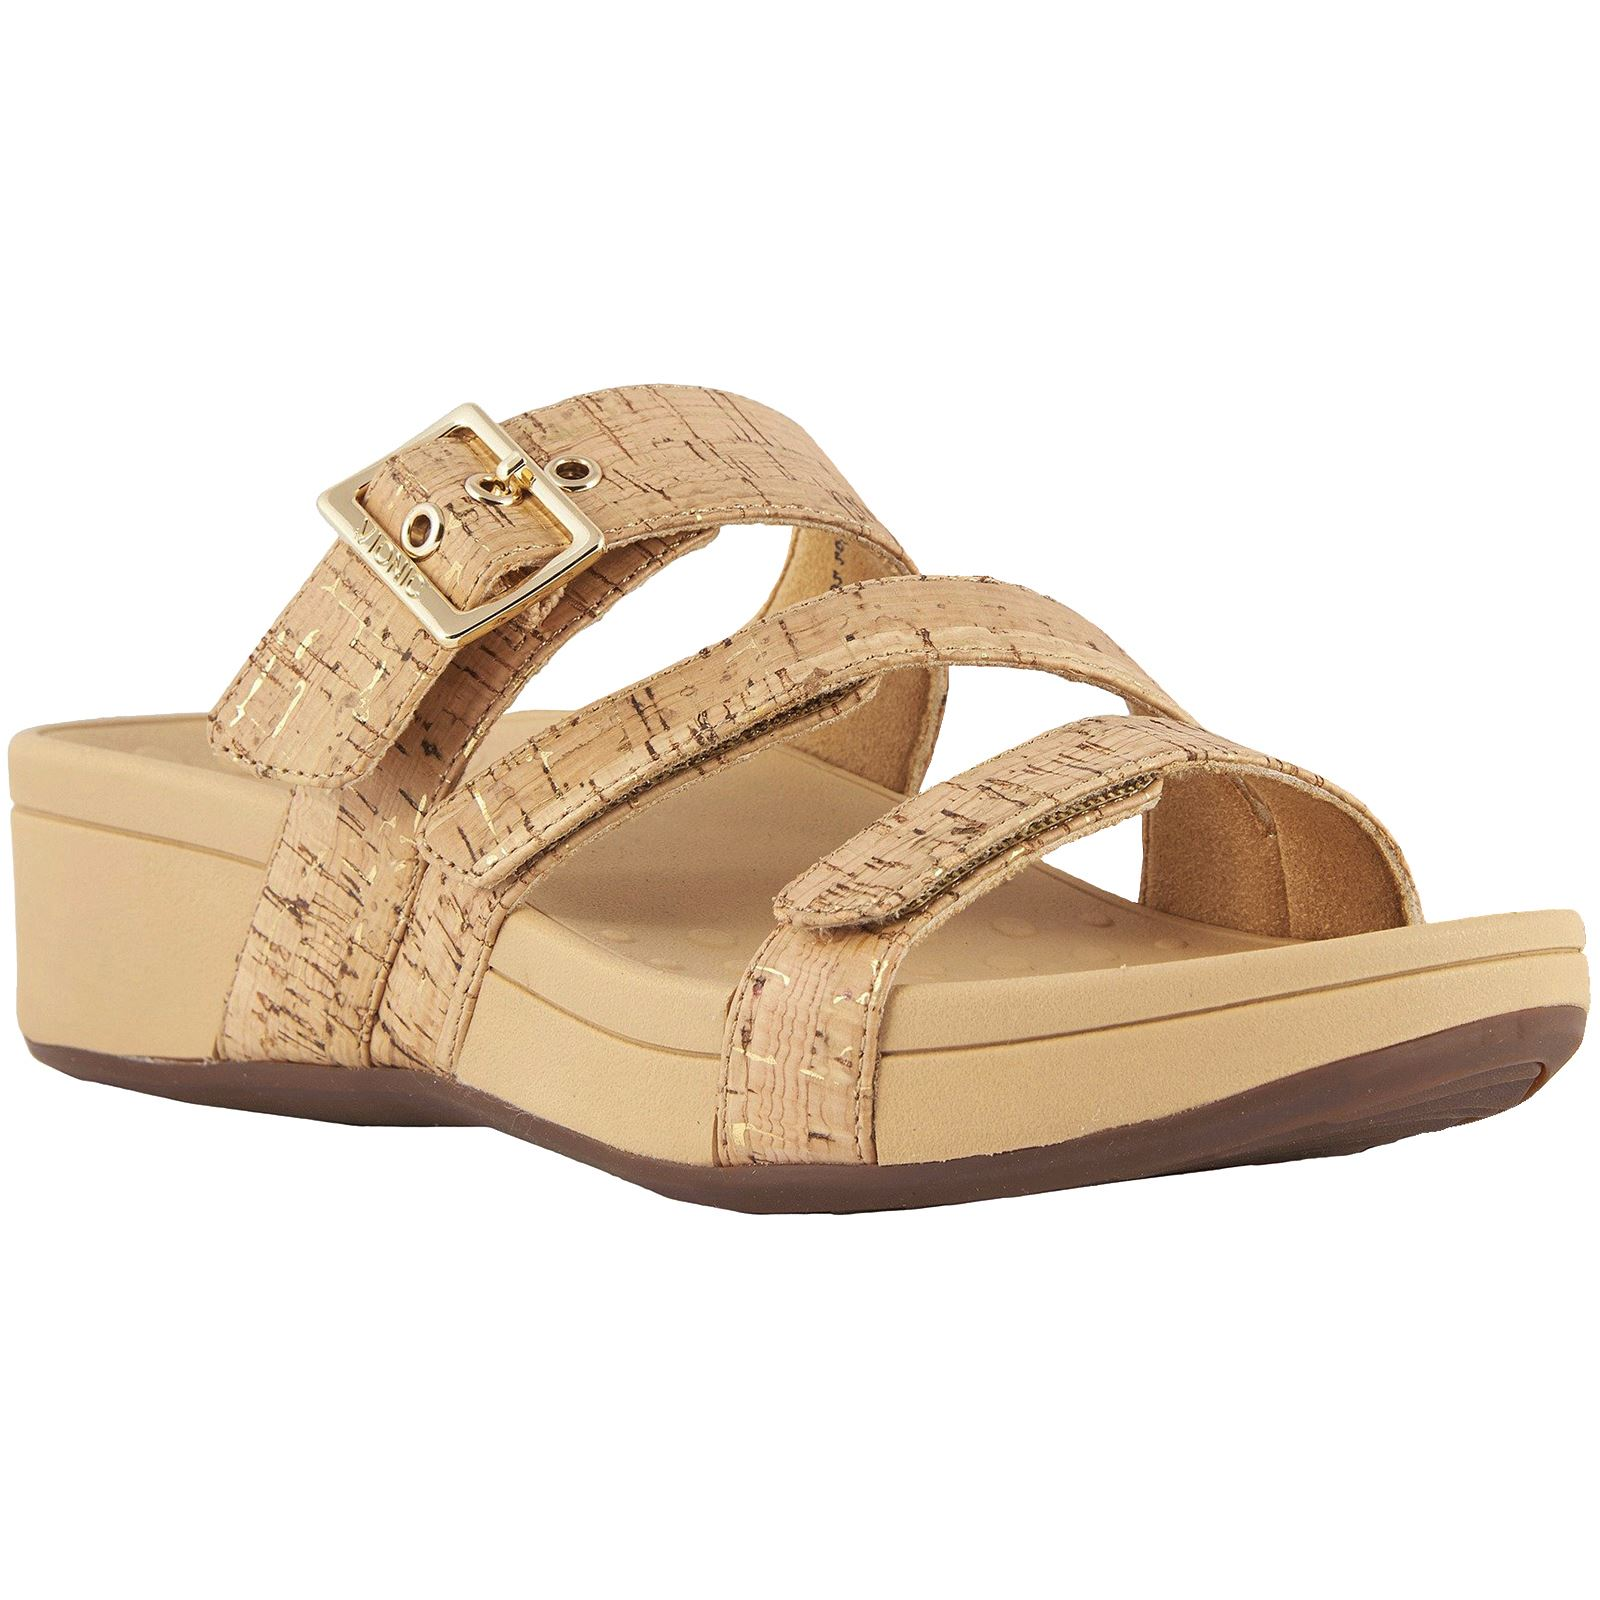 Vionic Rio Gold Cork Wedge Slides